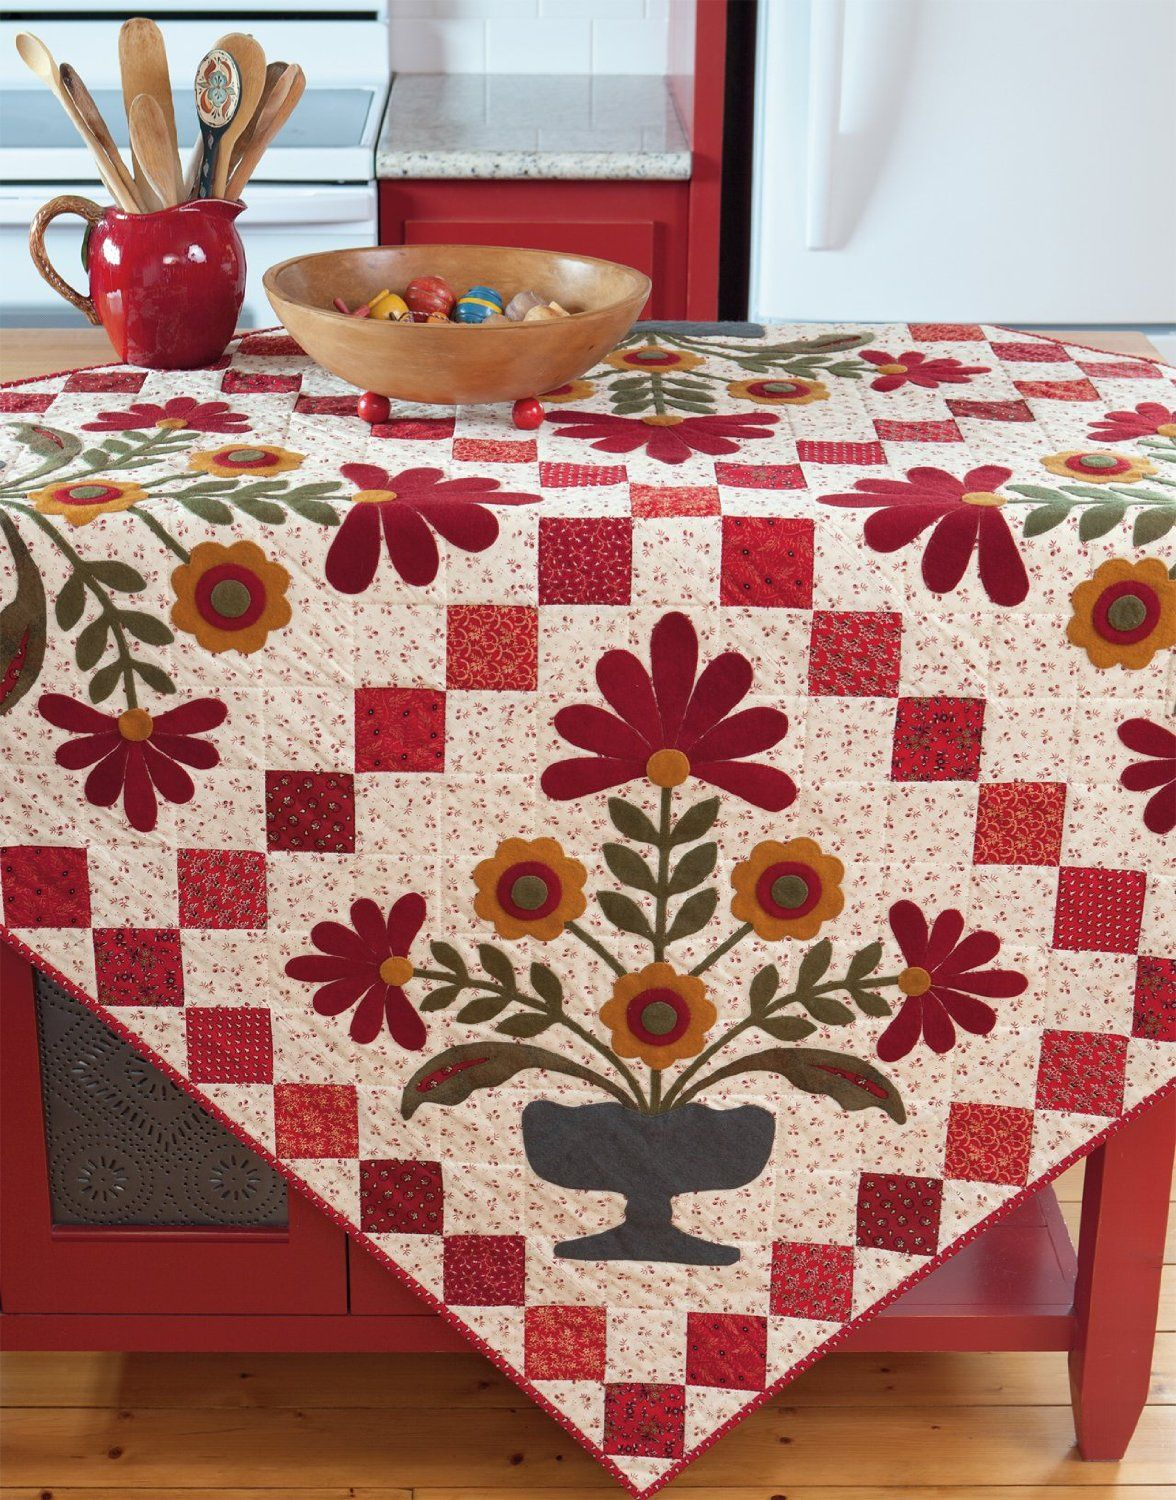 Applique designs for tablecloth - Amazon Com Elegant Quilts Country Charm Applique Designs In Cotton And Wool